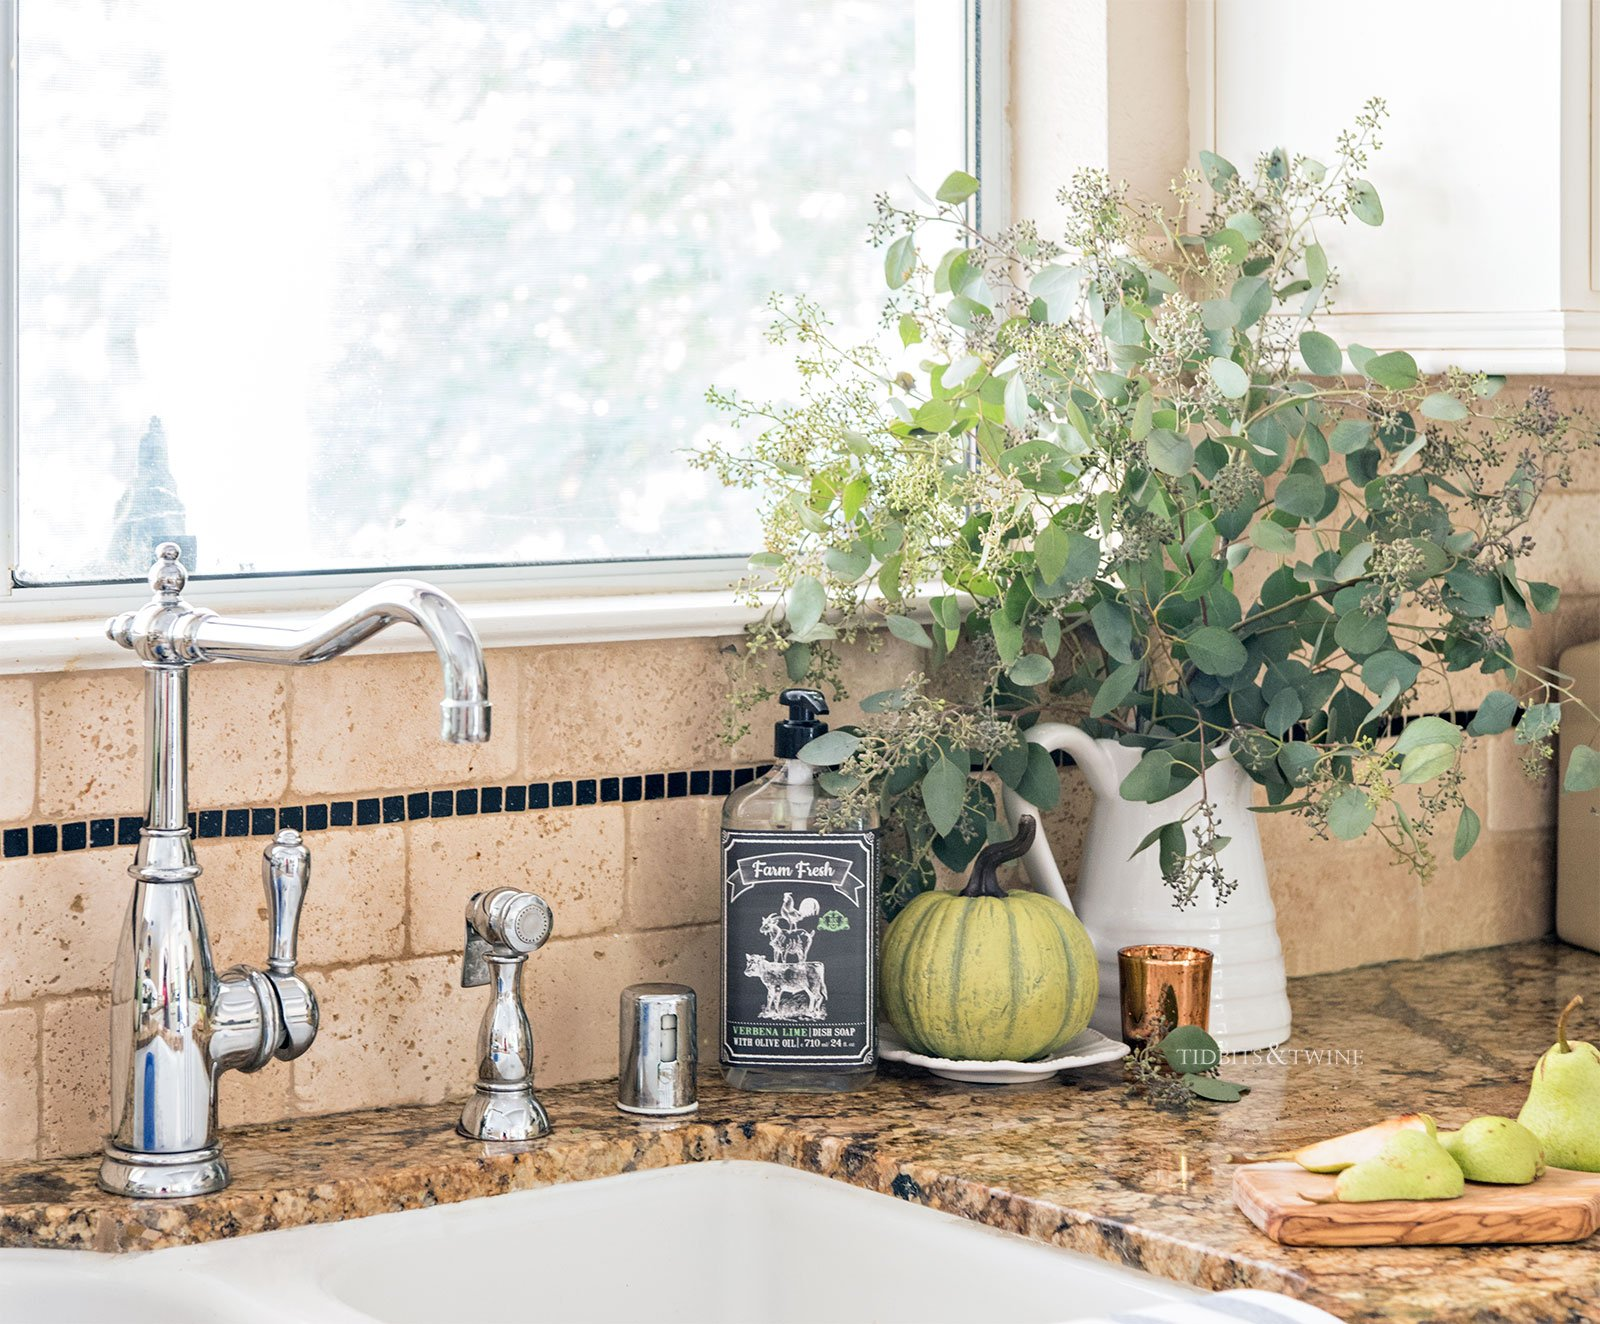 Farmhouse kitchen sink decorated for fall